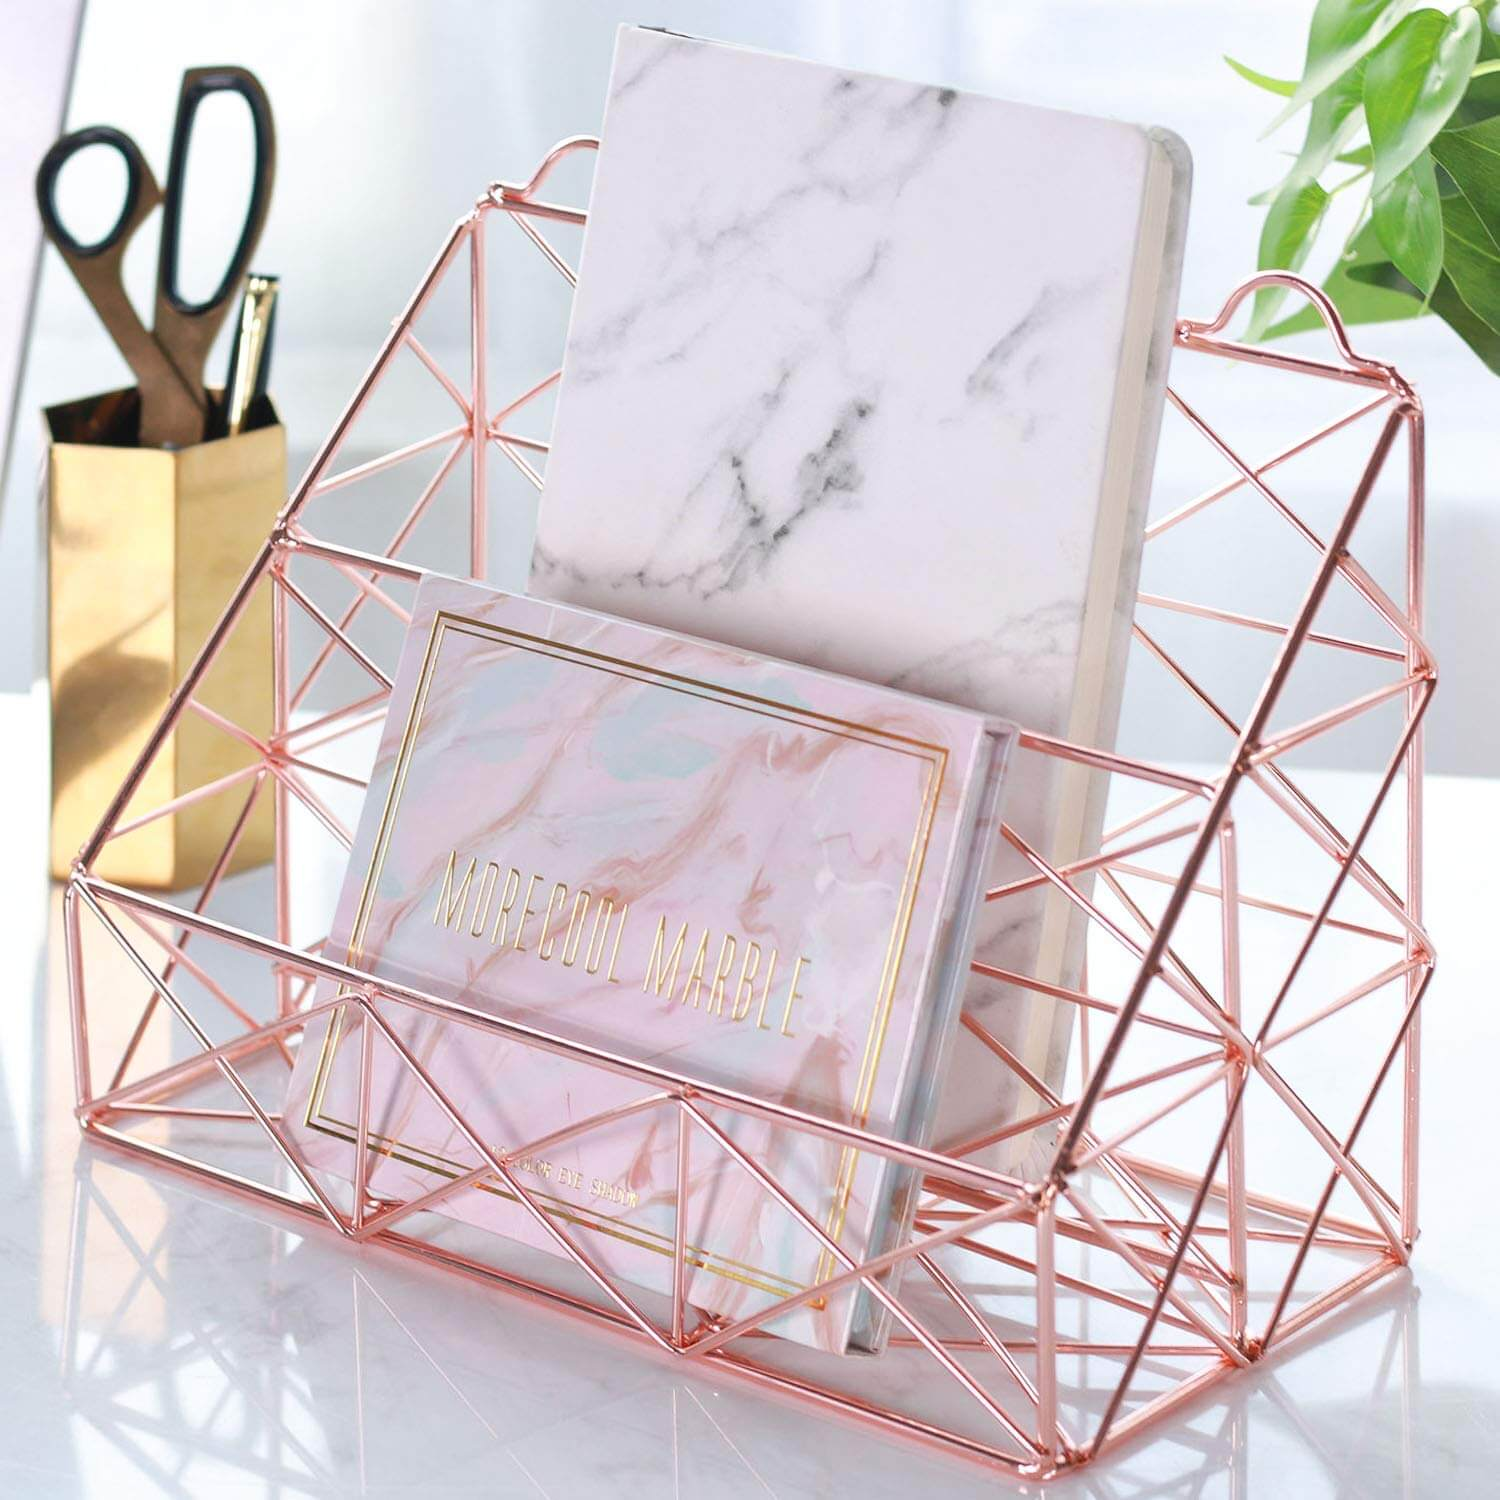 rose gold metal wire organizers as a product suggestion on how to keep your house clean